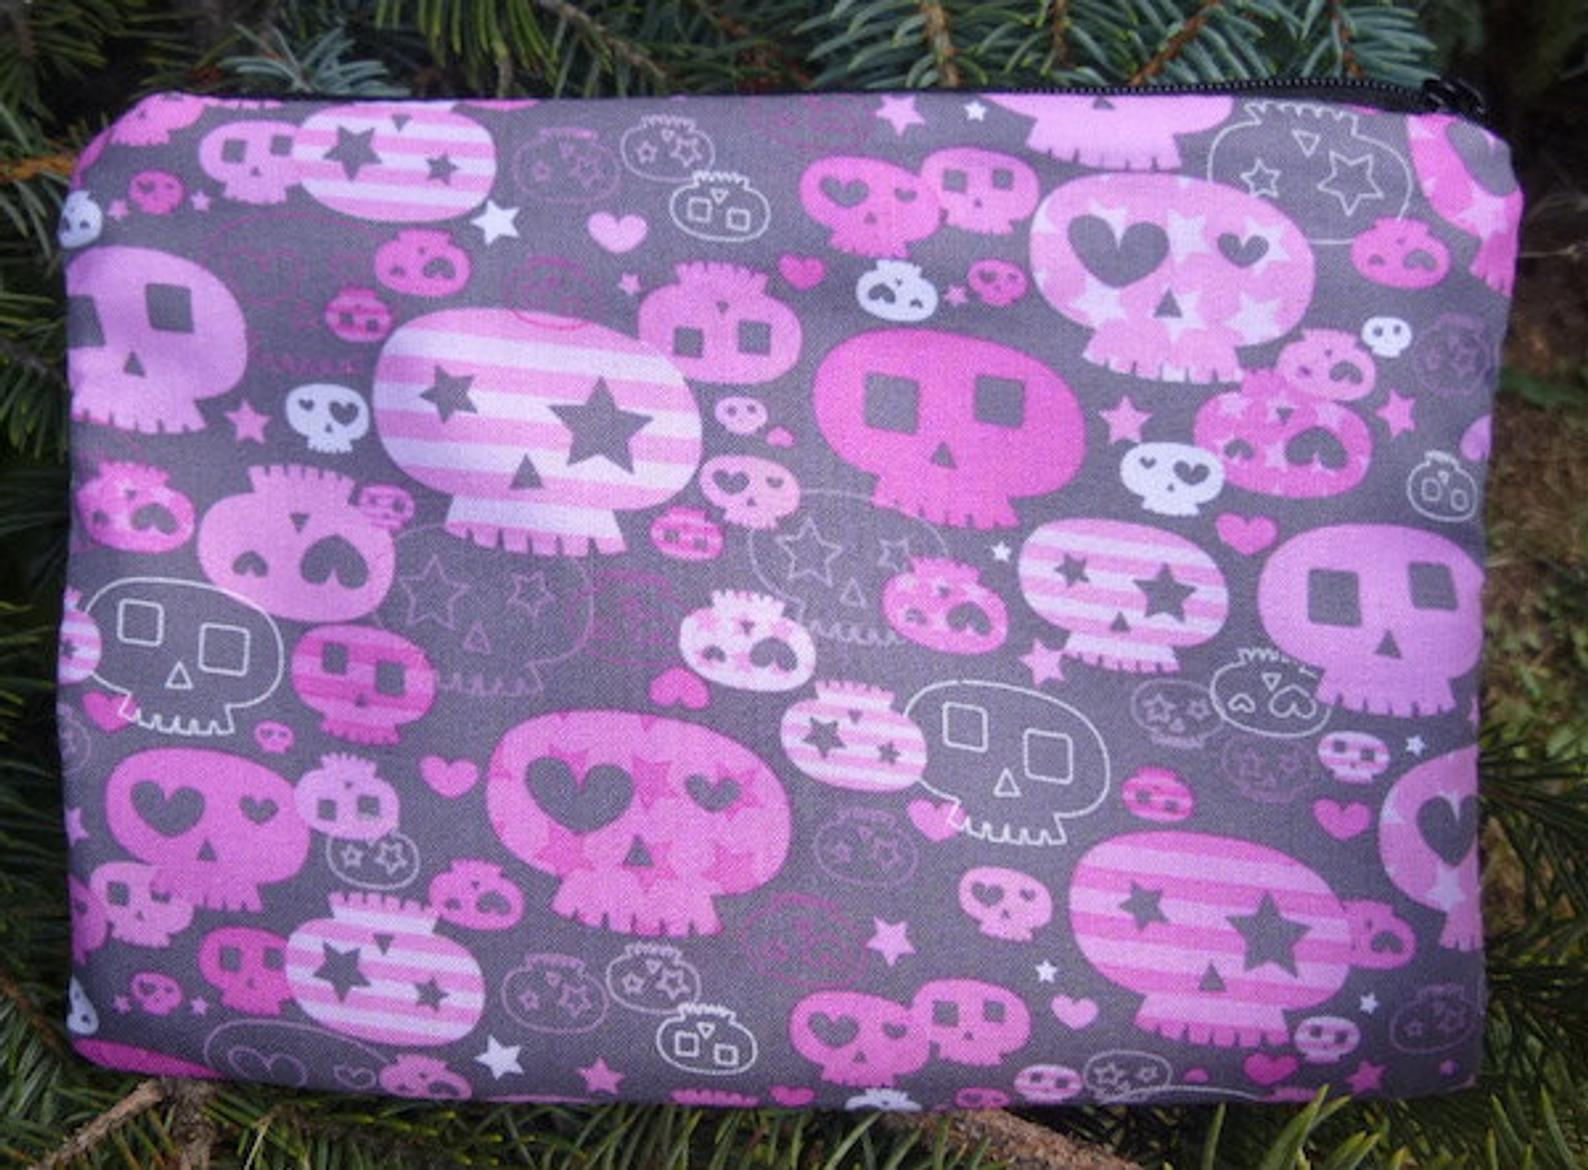 Girly Skulls zippered bag, The Scooter